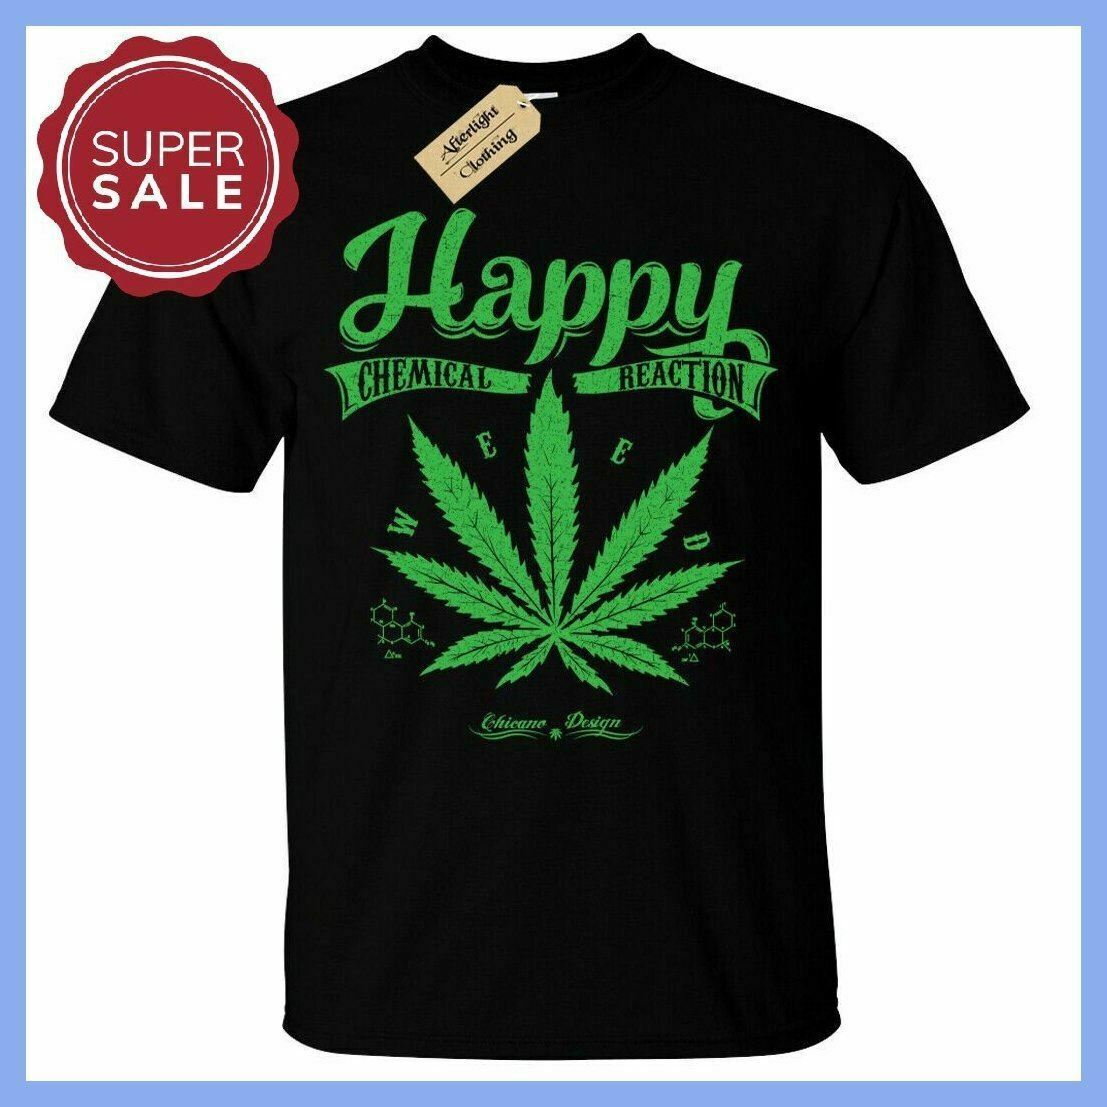 NEW HAPPY CHEMICAL REACTION T-SHIRT MENS WEED CANNABIS TEE 1